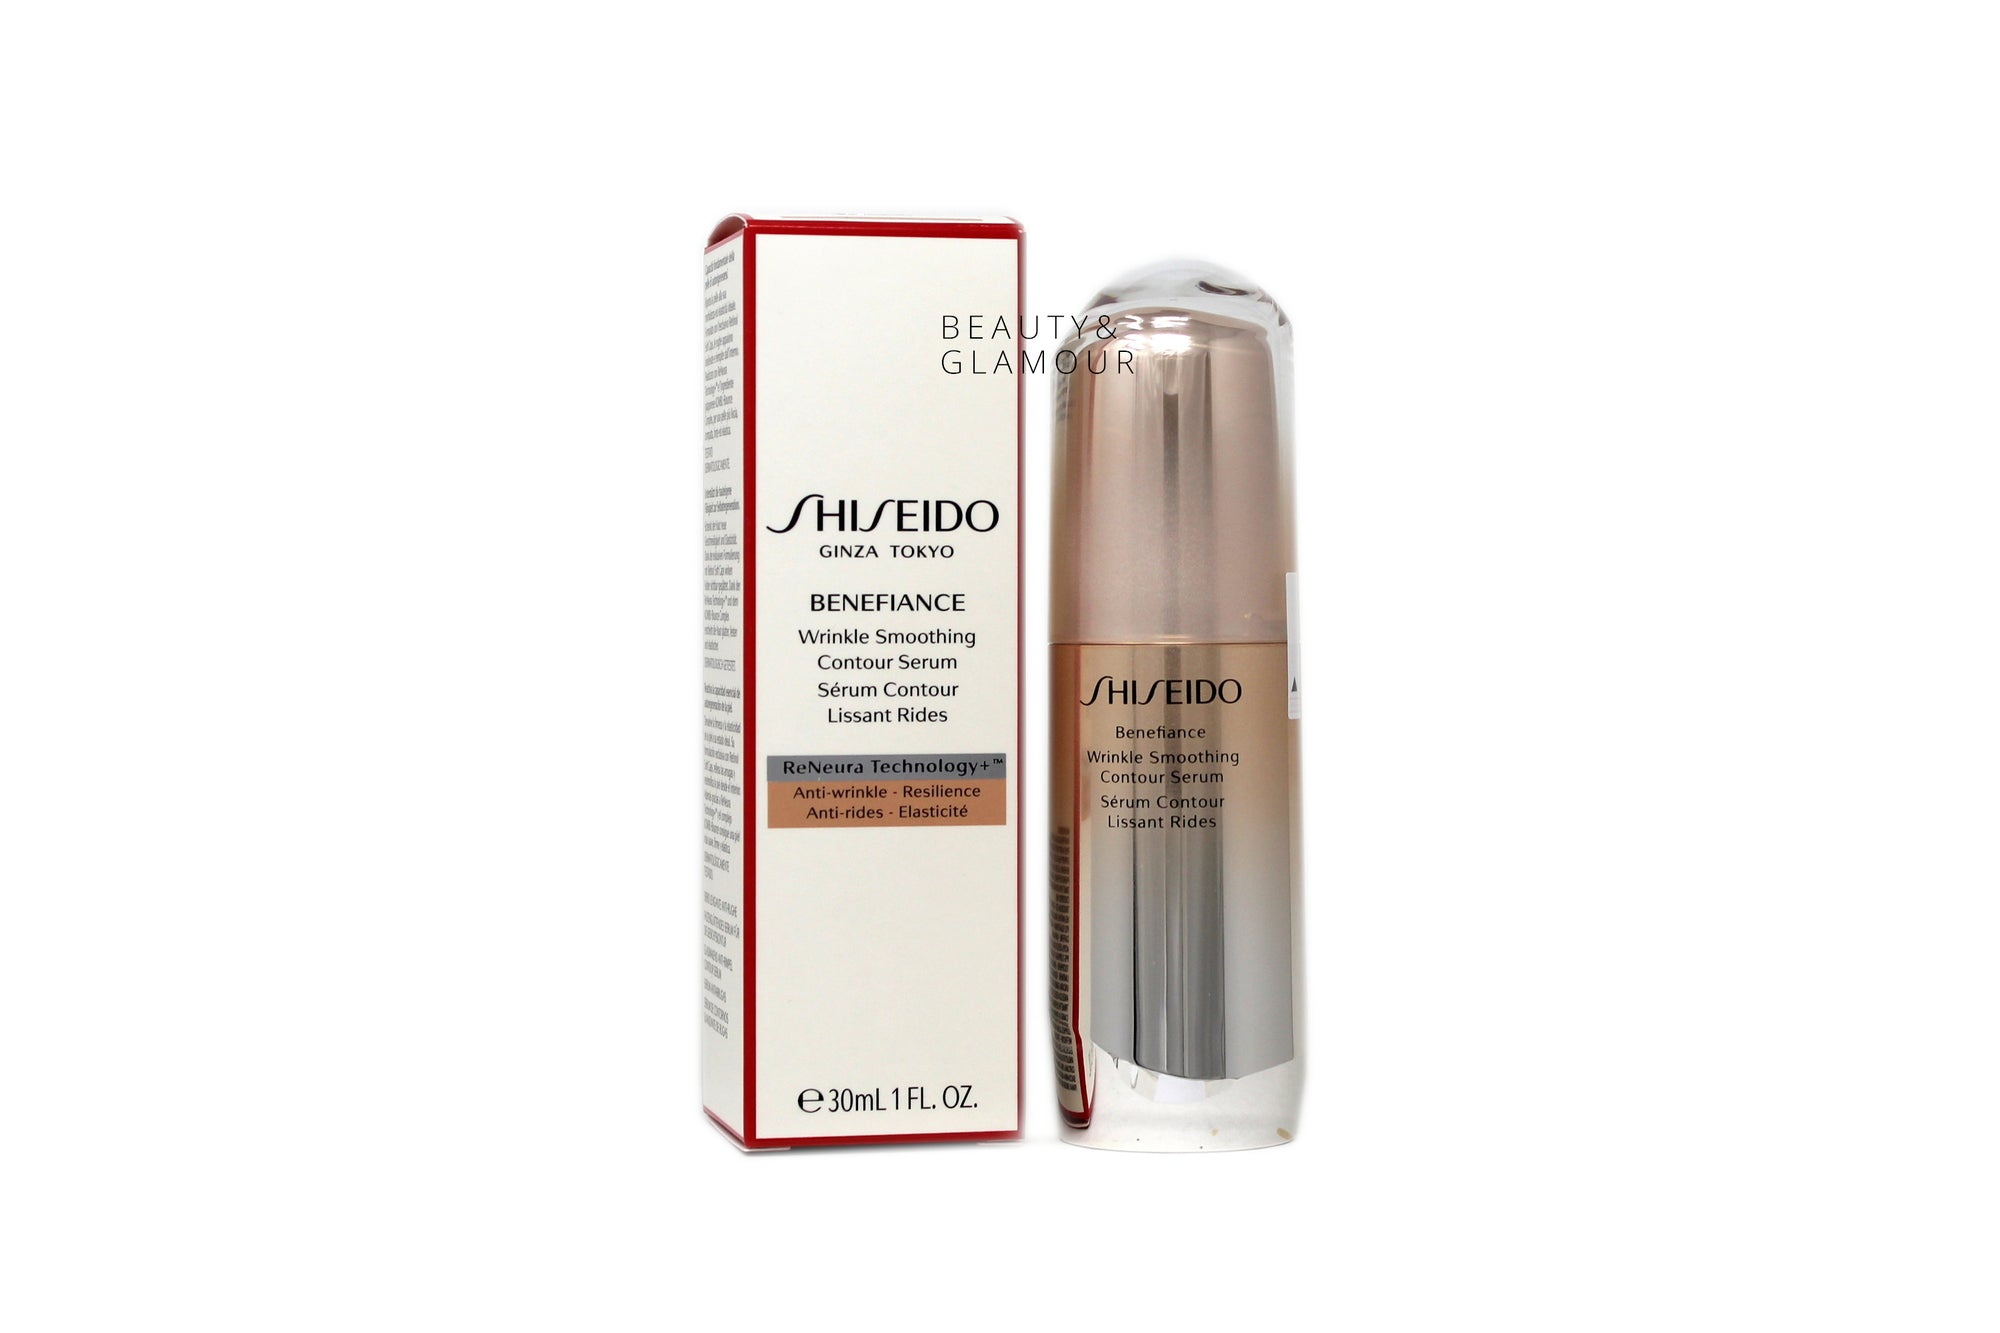 SHISEIDO BENEFIANCE WRINKLE SMOOTHING CONTOUR SERUM  RENEURA TECHNOLOGY+  AVAILABLE SIZE: 30 ML/1 FL.OZ.  BENEFITS:  RENEURA TECHNOLOGY+ FEATURES NATSUME AND ACTIVE RESPONSE POWDER ASHITABA TO HELP IMPROVE SKIN RECEPTIVITY TO AWAKEN AND MAINTAIN THE EFFECTIVENESS OF YOUR TREATMENT OVER TIME. KOMBU-BOUNCE COMPLEX: FORMULATED WITH GREEN, BROWN, AND RED ALGAE WHICH HELP ADDRESS THE CAUSES OF WRINKLE FORMATION AND SERVES AS A NATURAL WRINKLE INNER-FILLER.